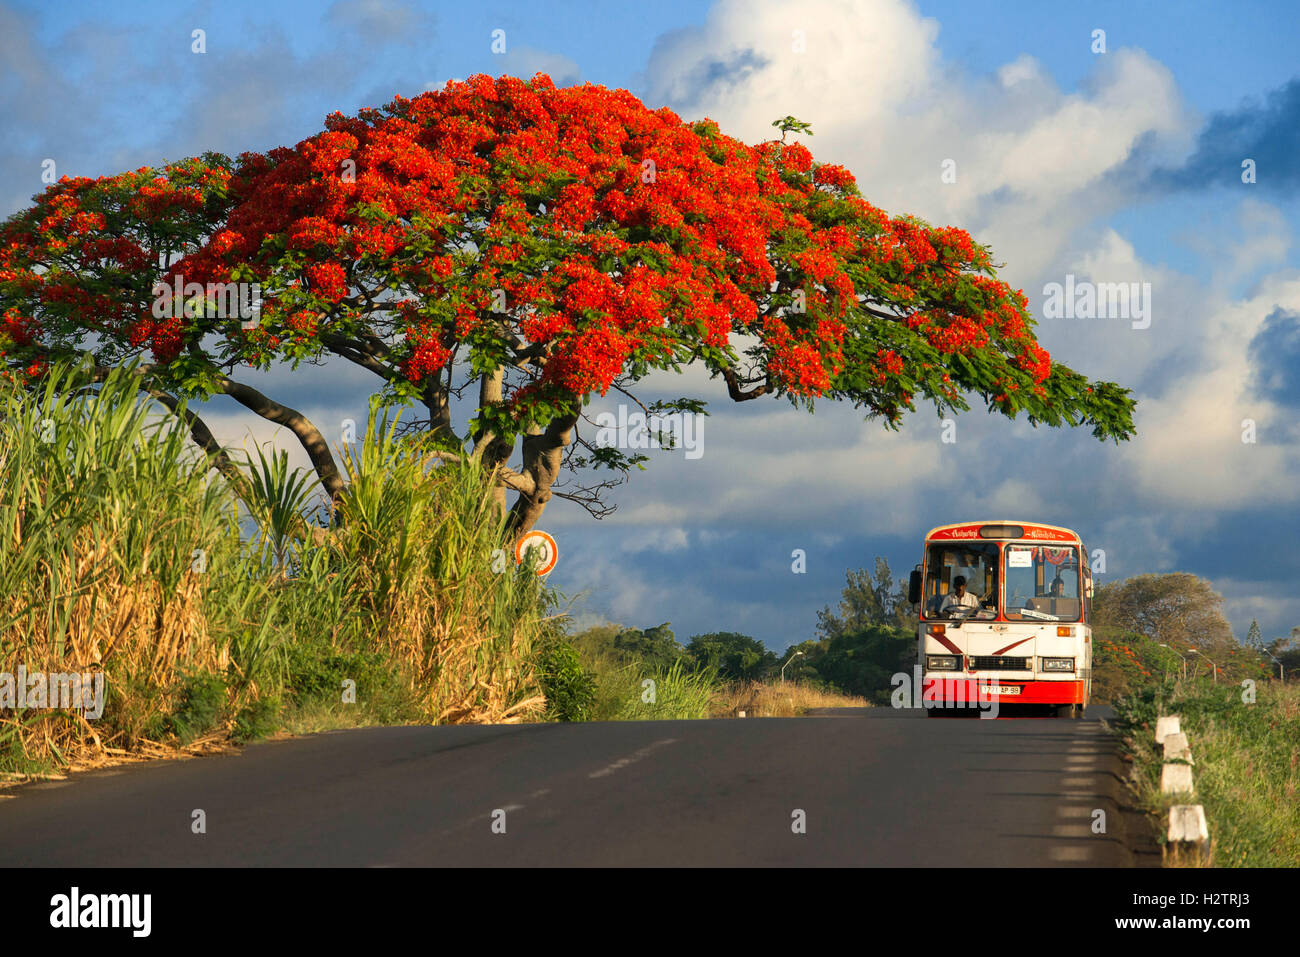 Royal Poinciana Trees (English) Flamboyant Real (Spanish) in Cap Malheureux, Riviere Du Rempart, Mauritius. - Stock Image